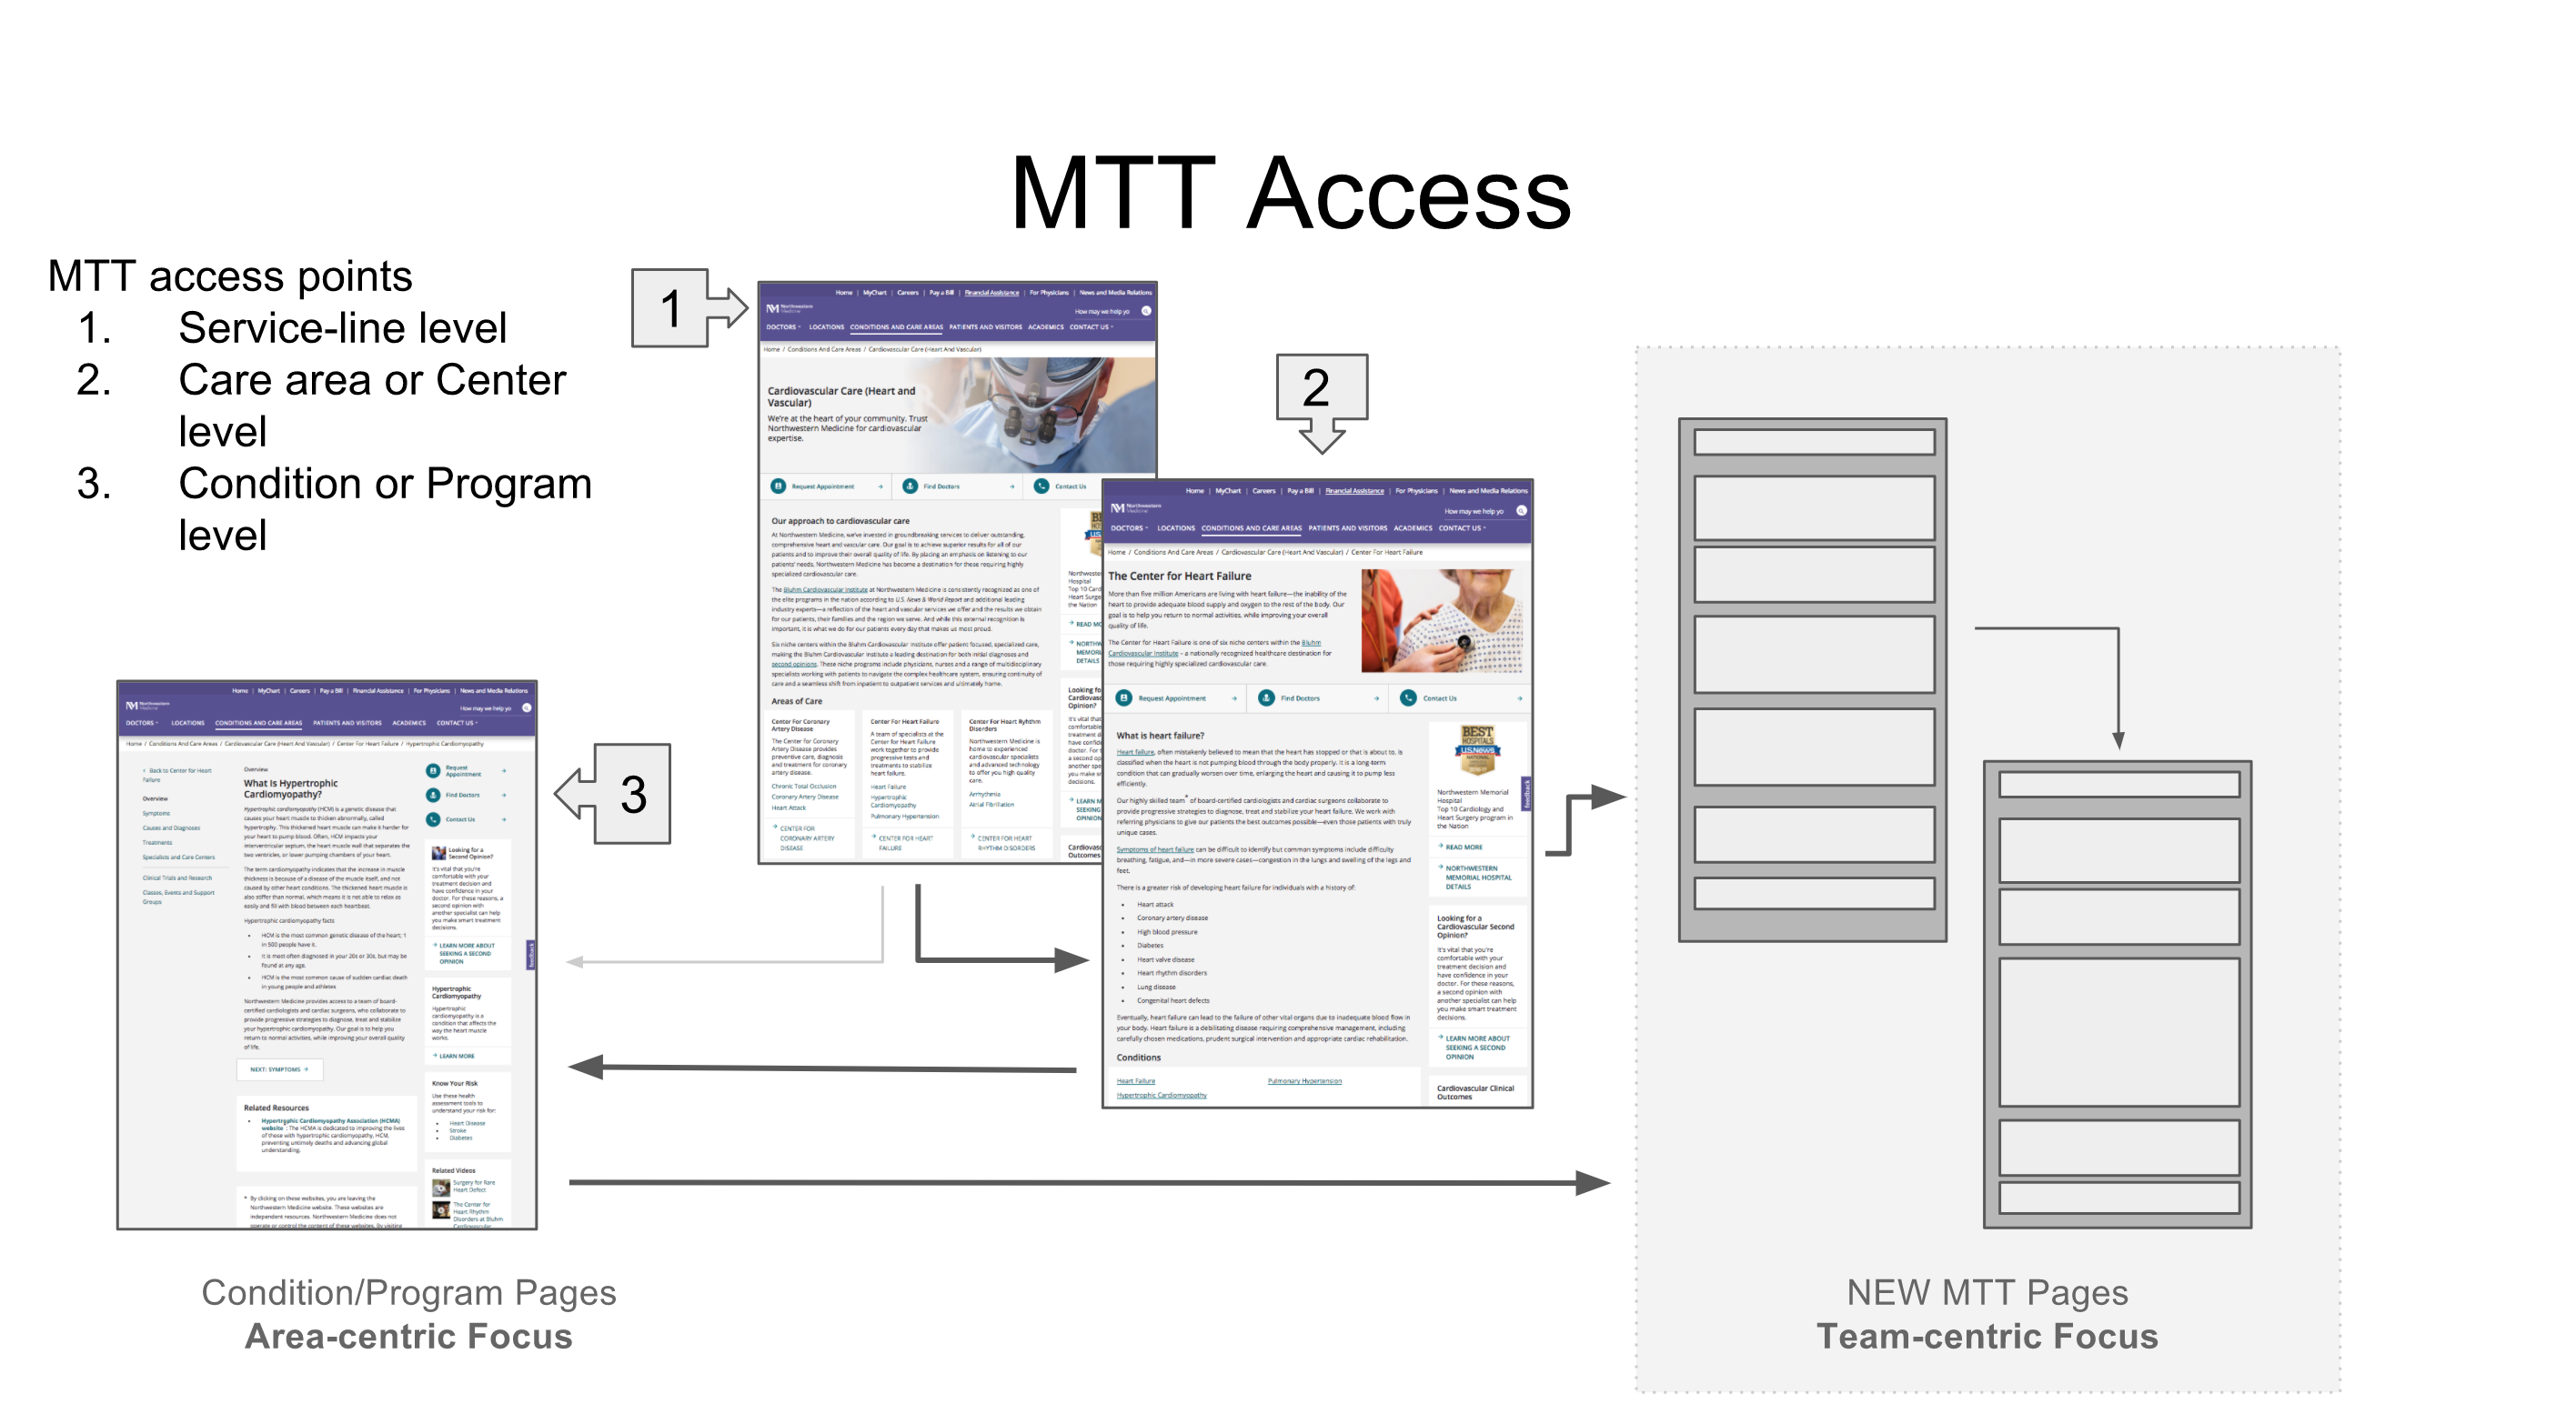 image showing how existing pages align to both new MTT pages and behavior models